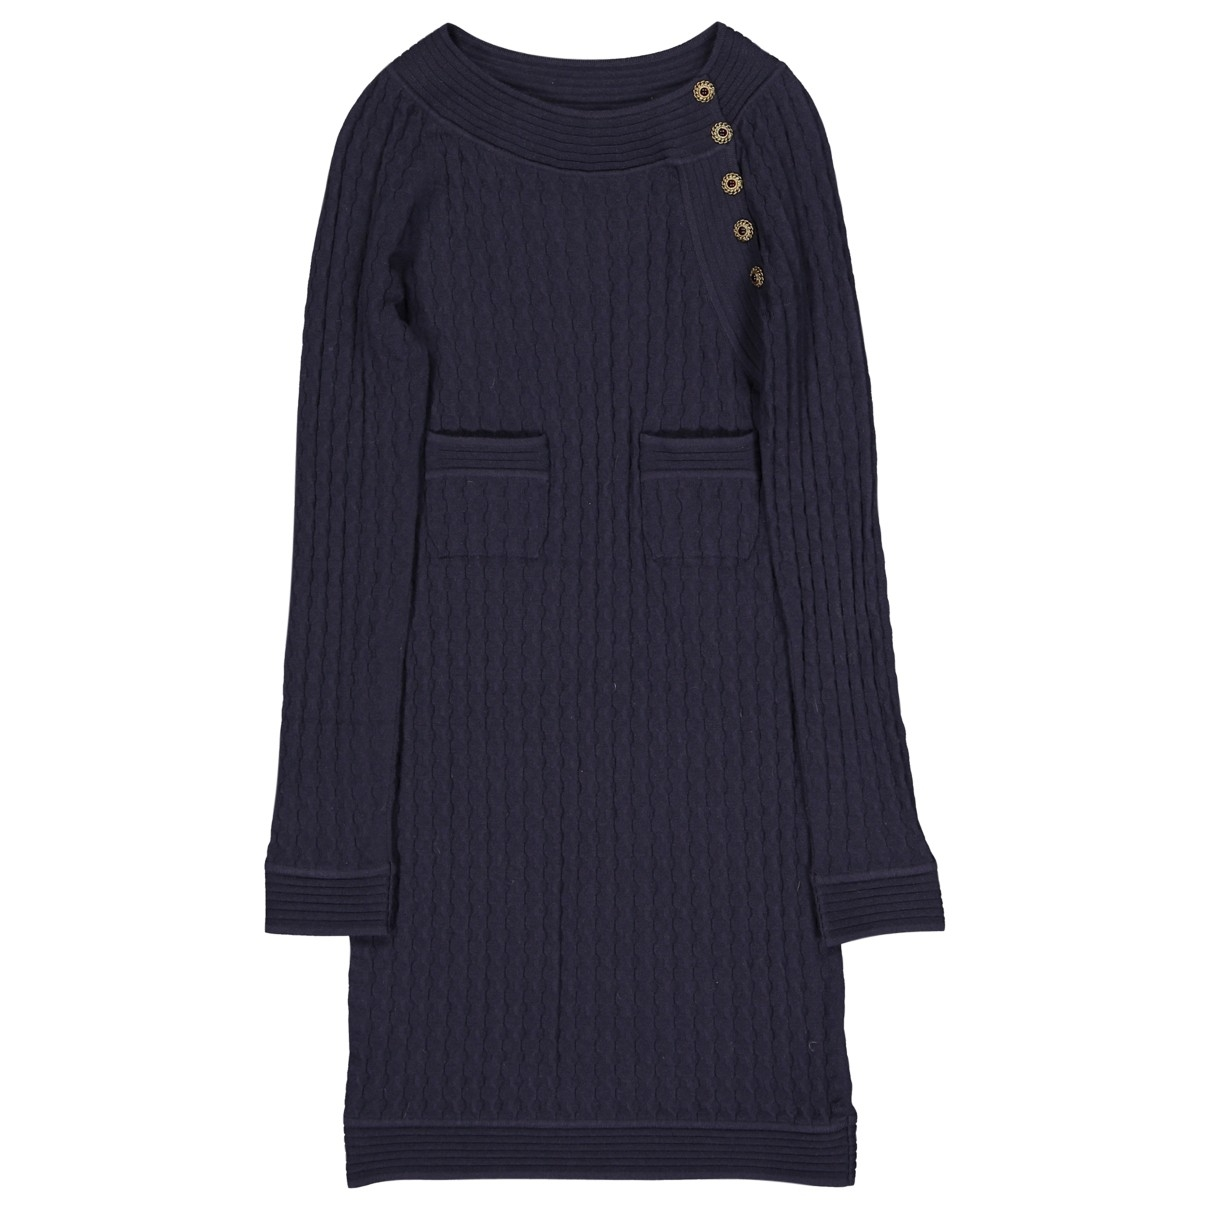 Chanel \N Navy Wool dress for Women 38 FR